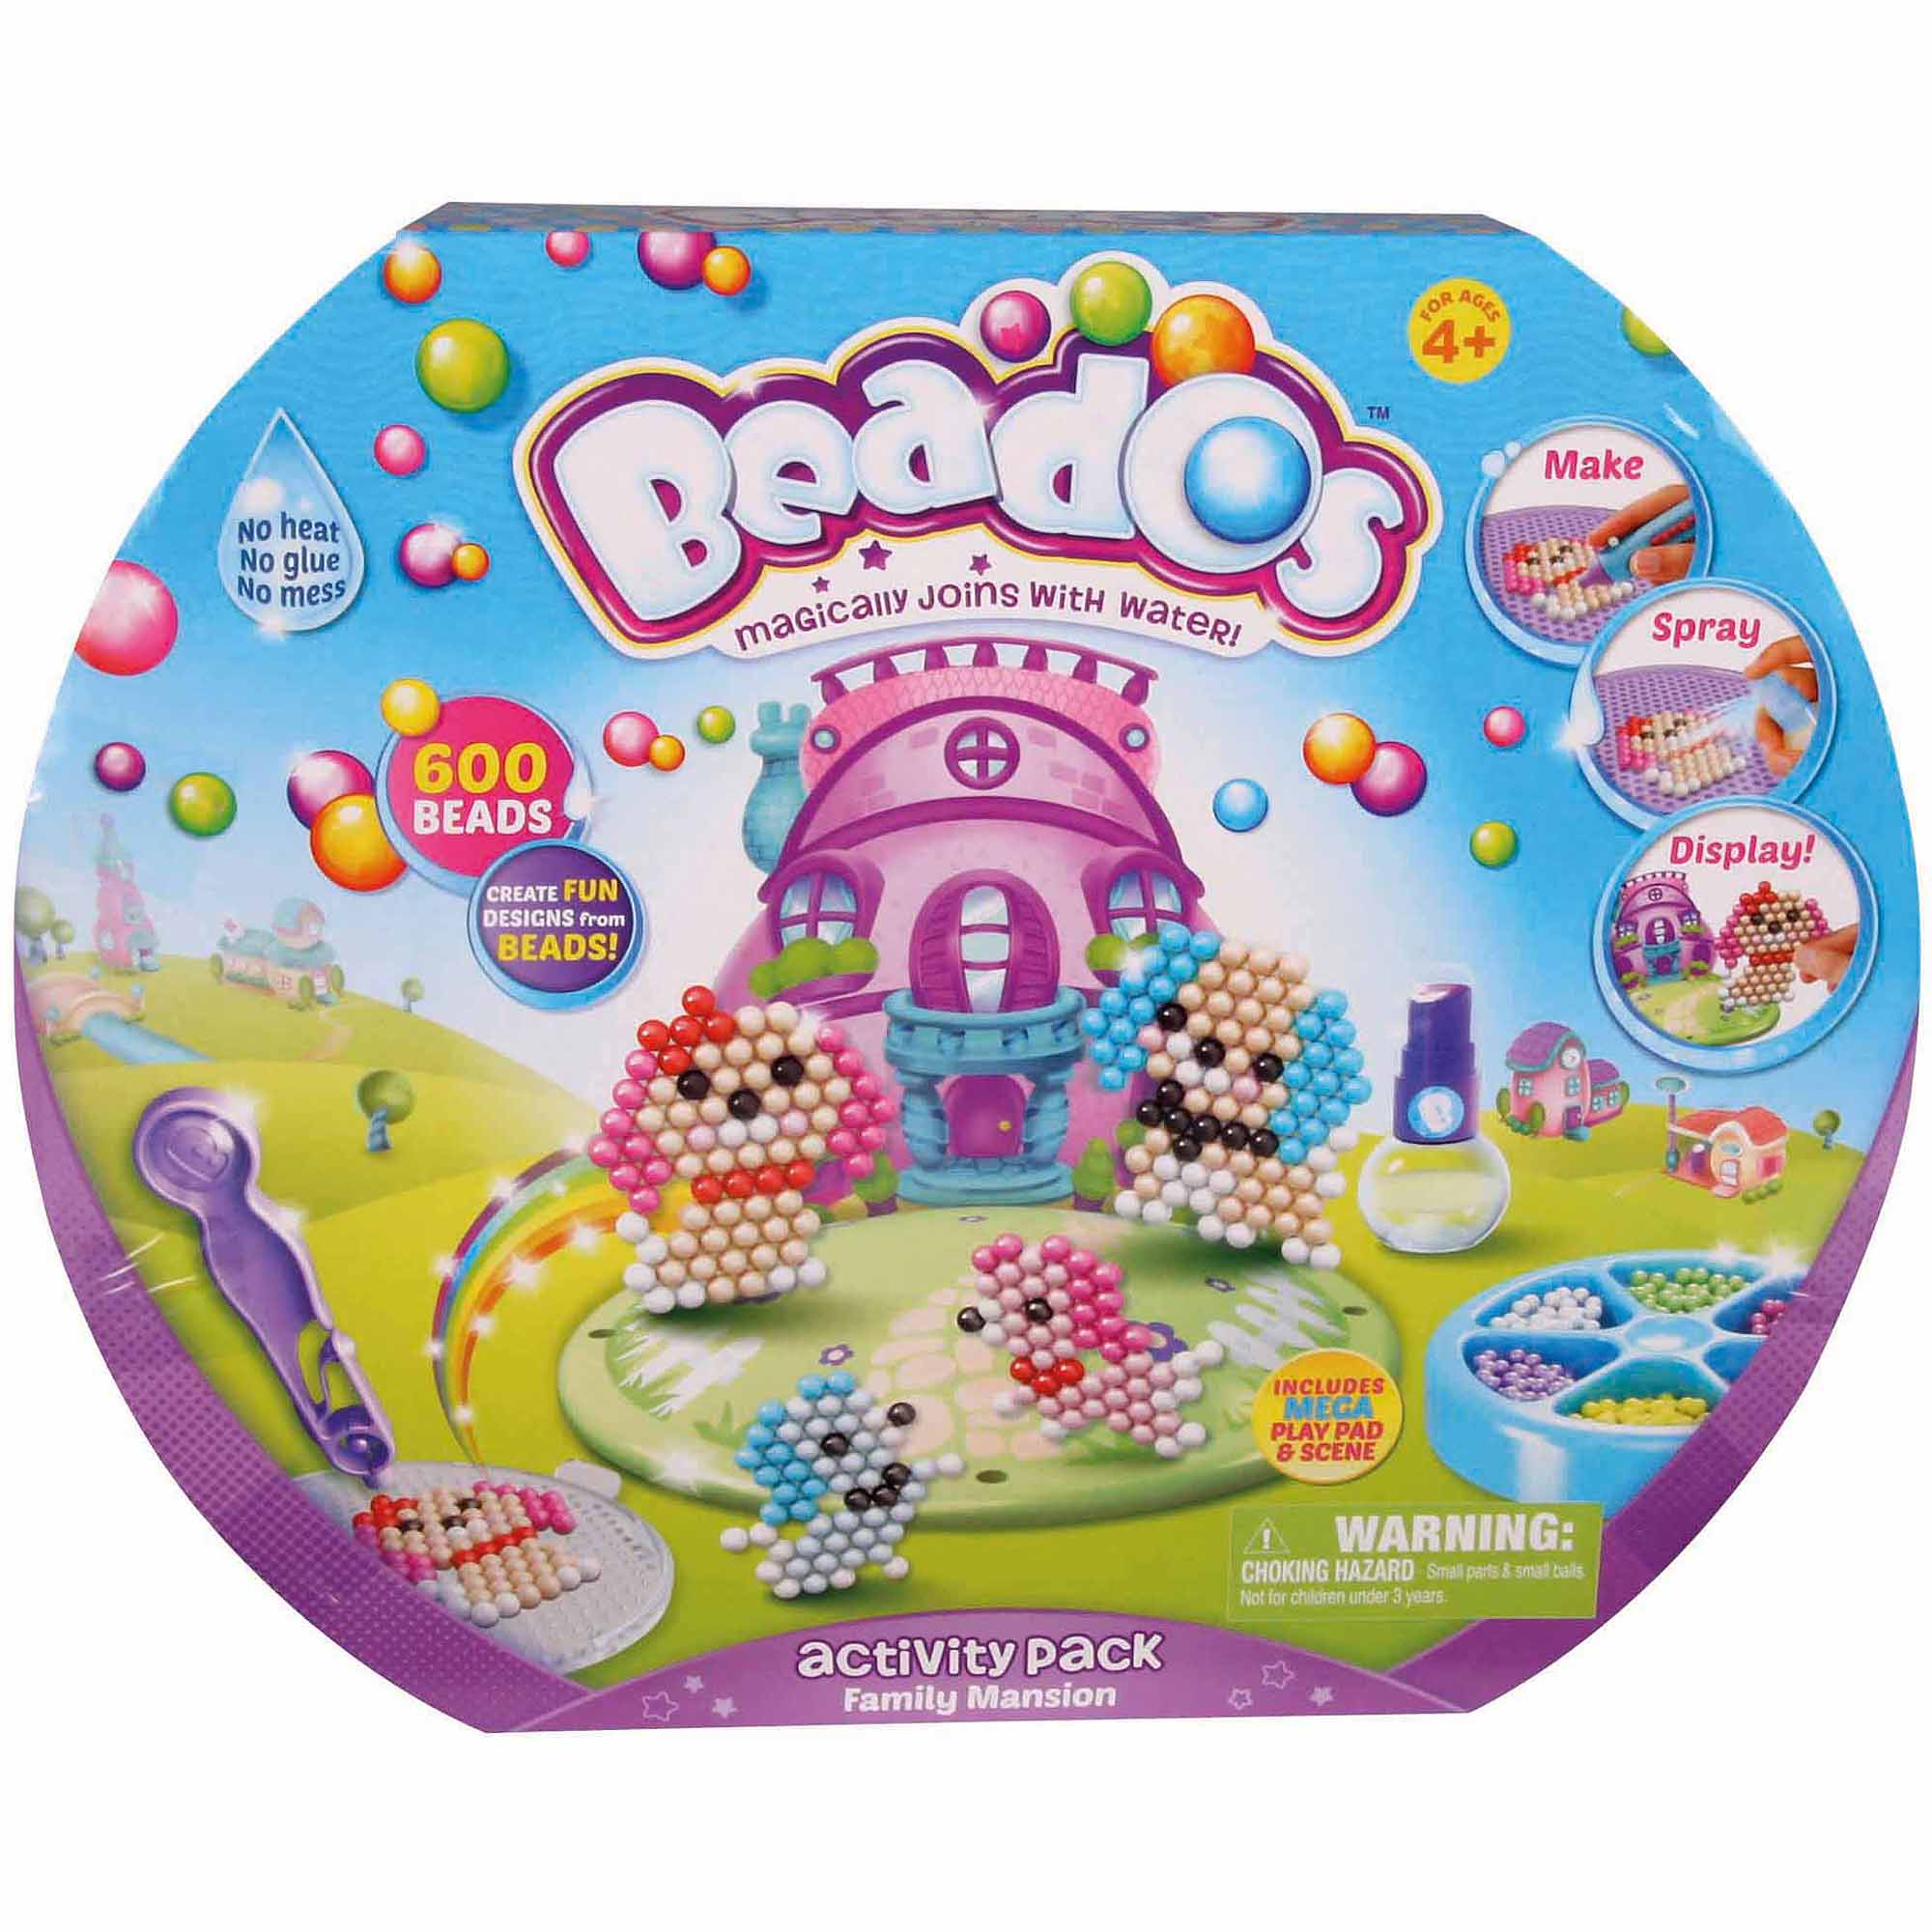 Beados Activity Pack, Family Mansion